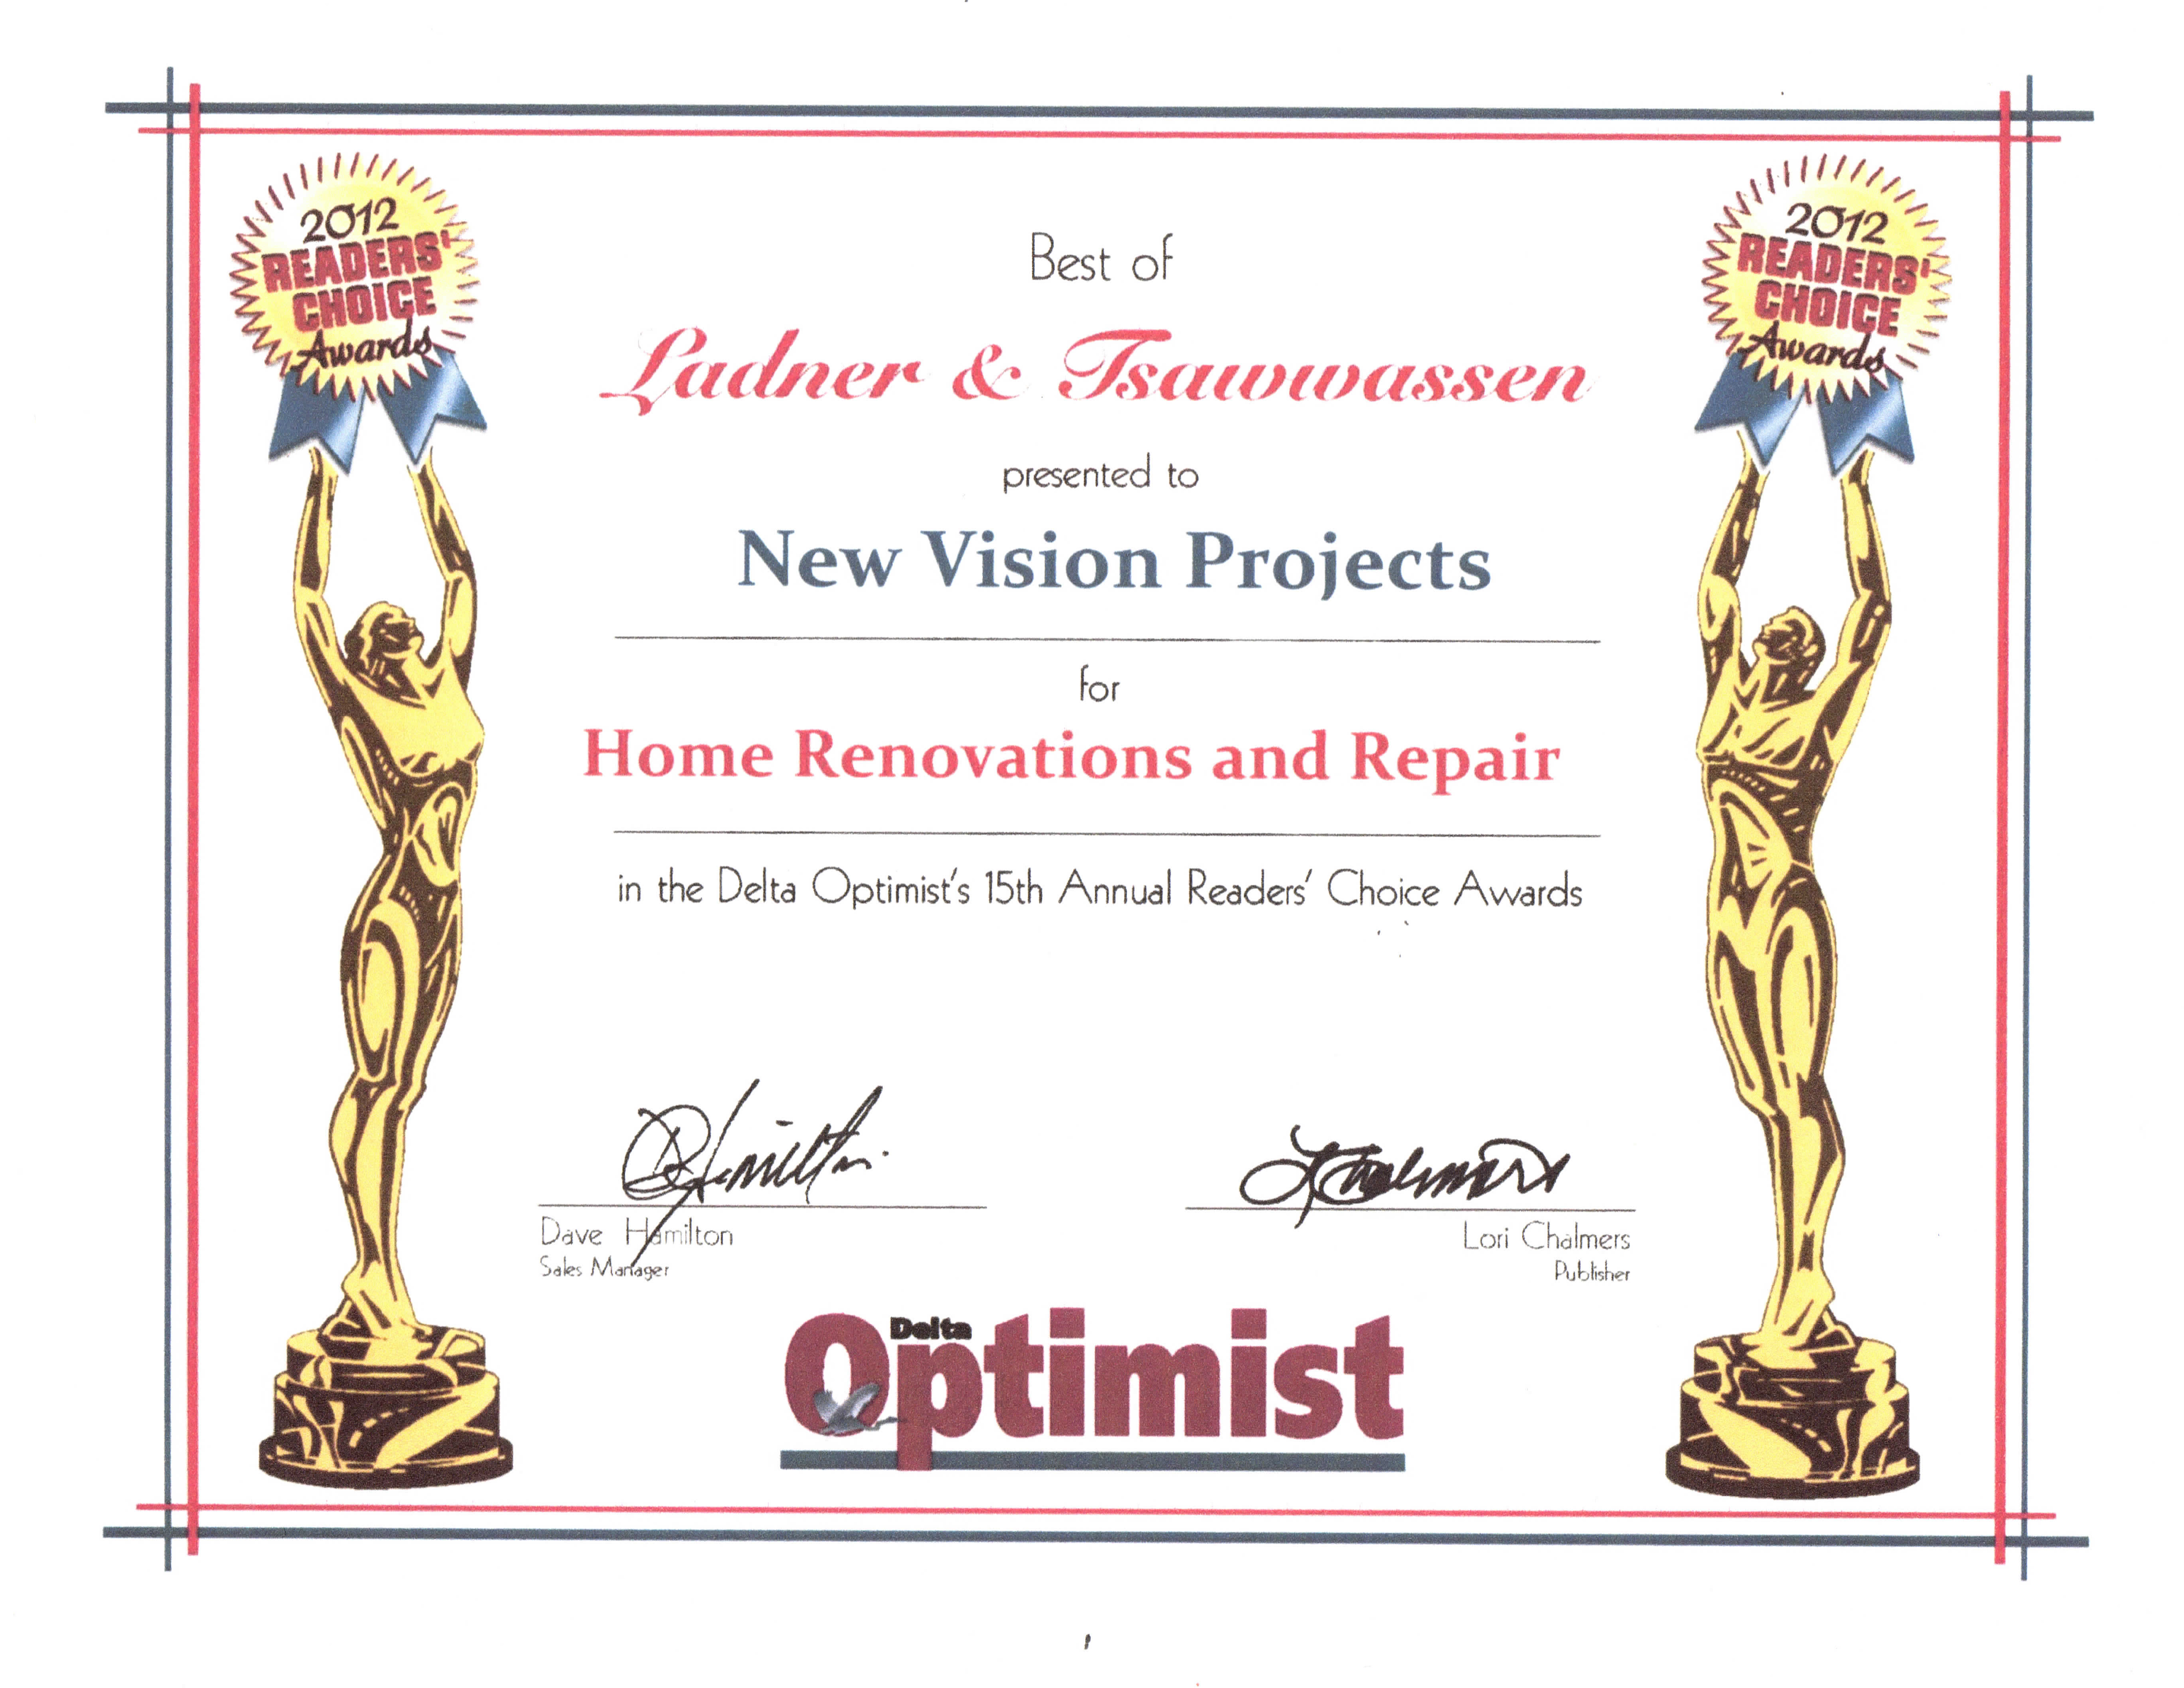 2012 Delta Optimist Readers Choice Awards – Best Home Renovations and Repair